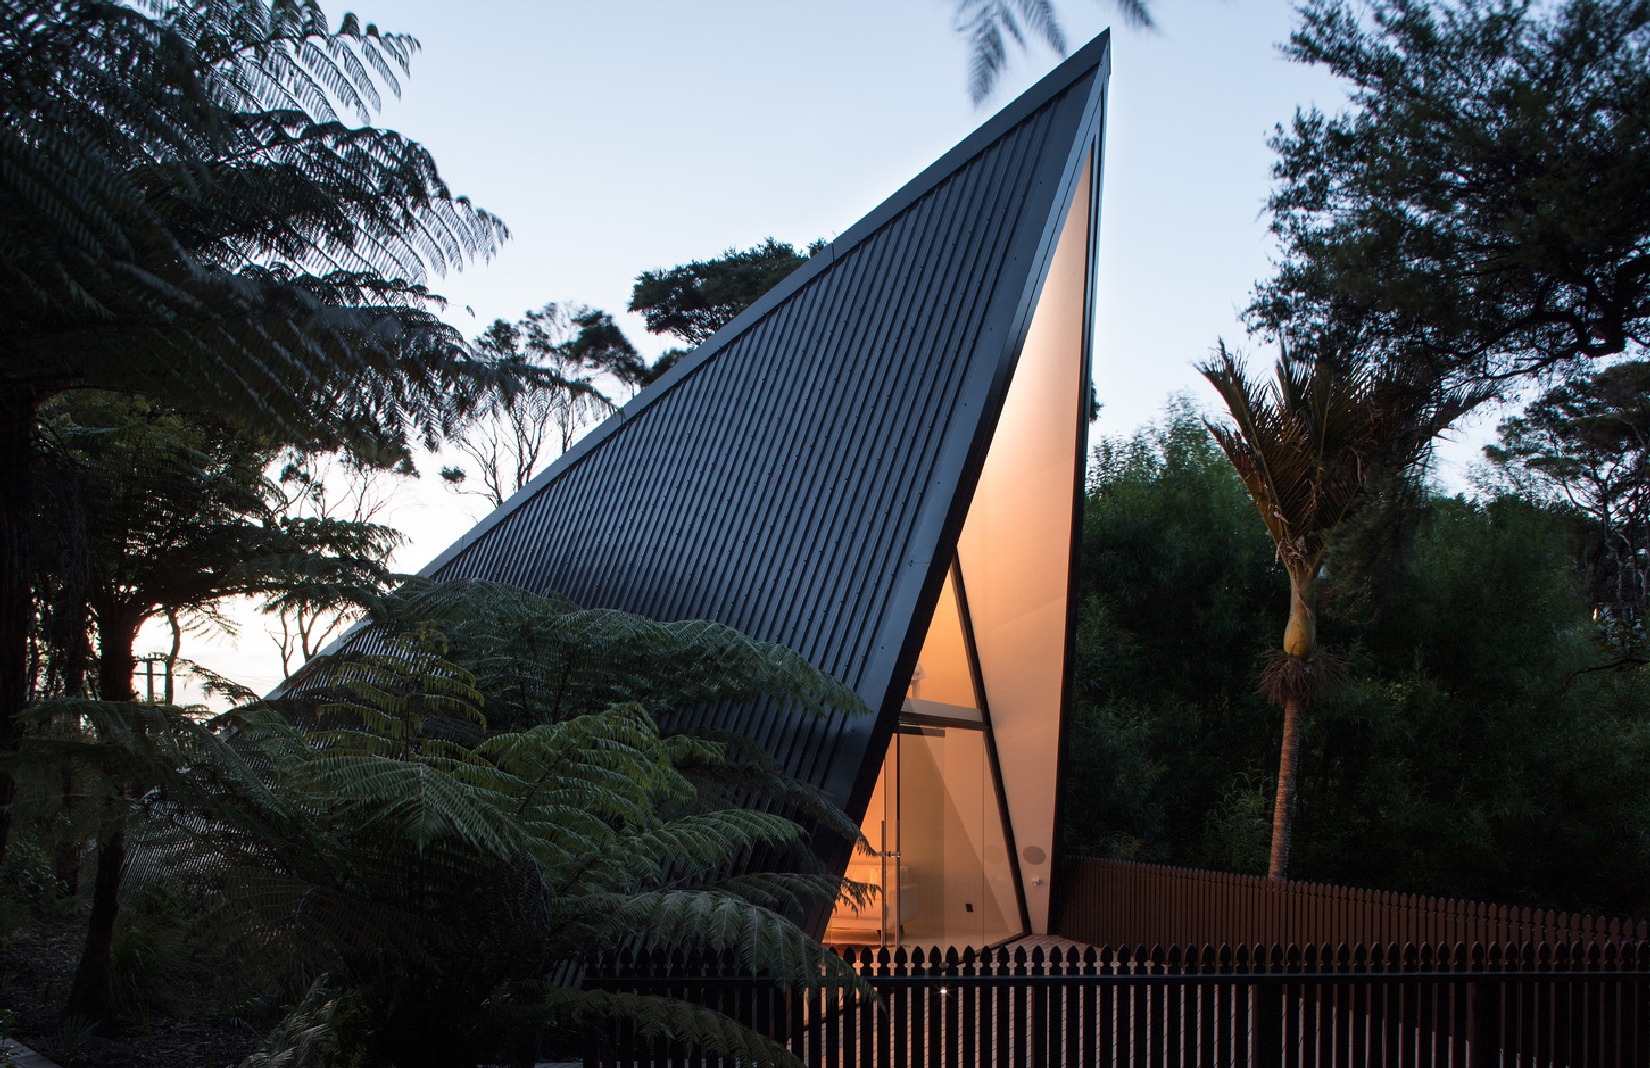 Tent House in Auckland New Zealand by designer Chris Tate & Holiday home of the week: a u0027tent houseu0027 in the wetlands of New ...